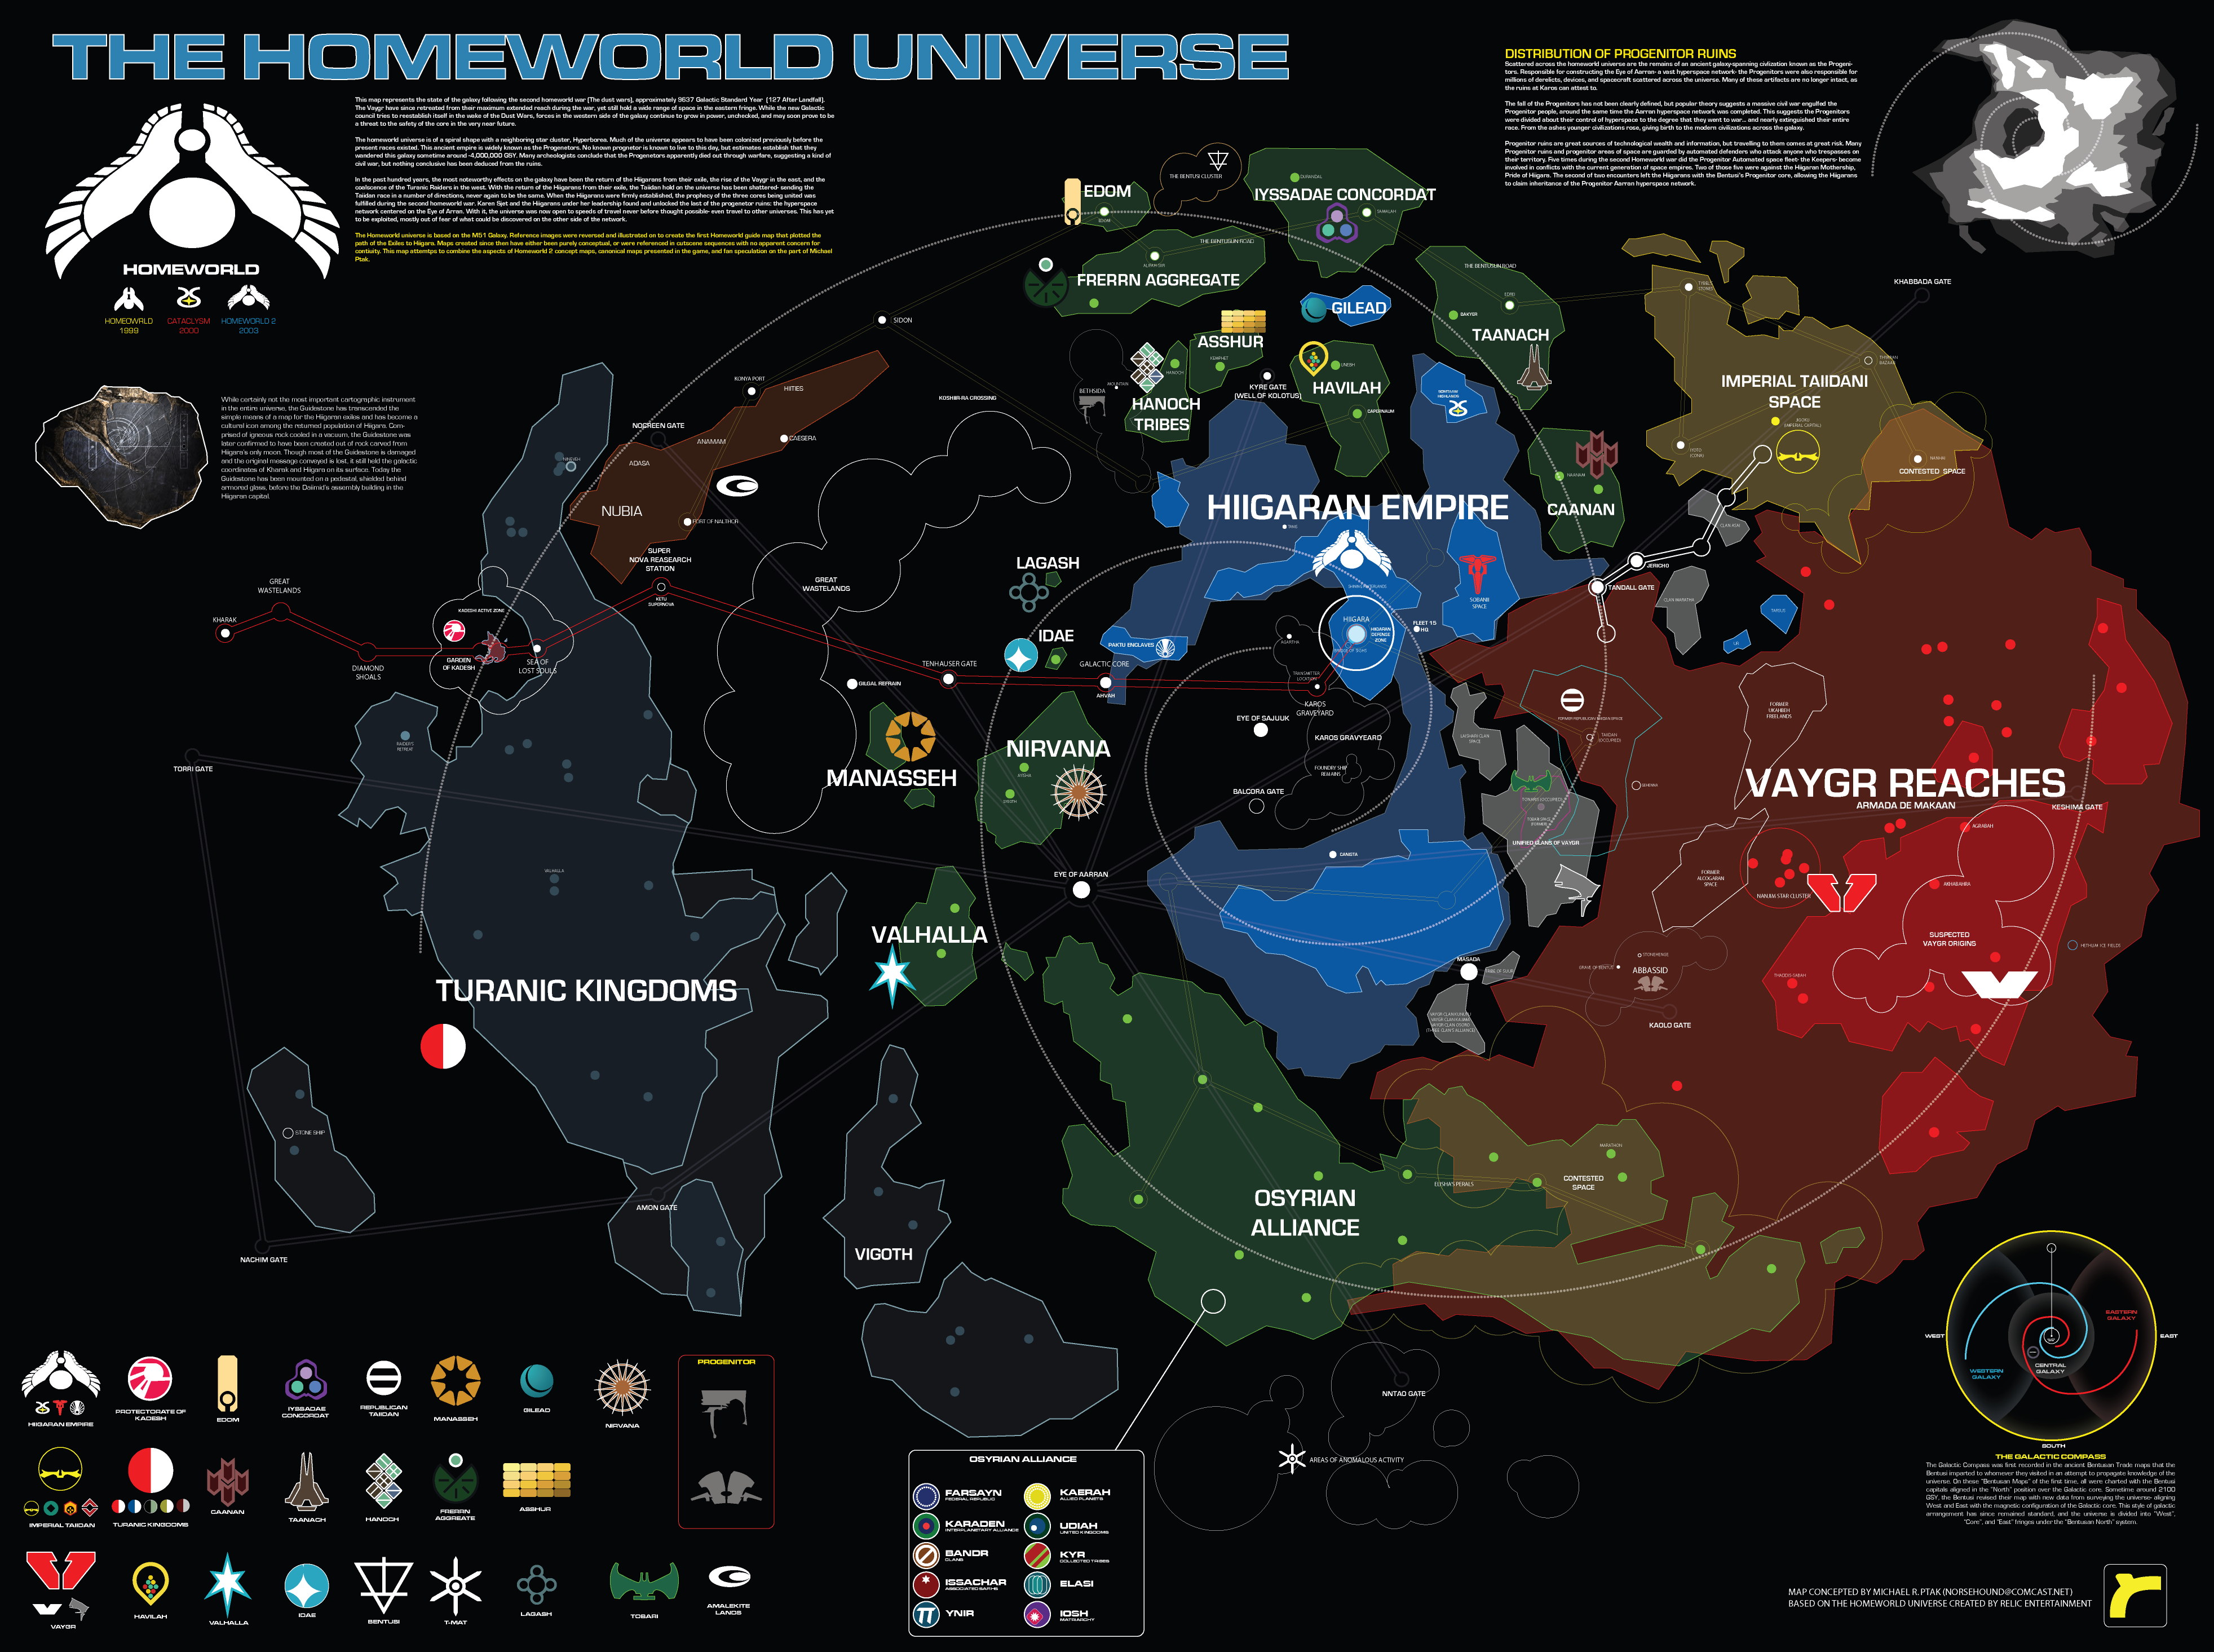 map of the homeworld universe by norsehound. map of the homeworld universe by norsehound on deviantart